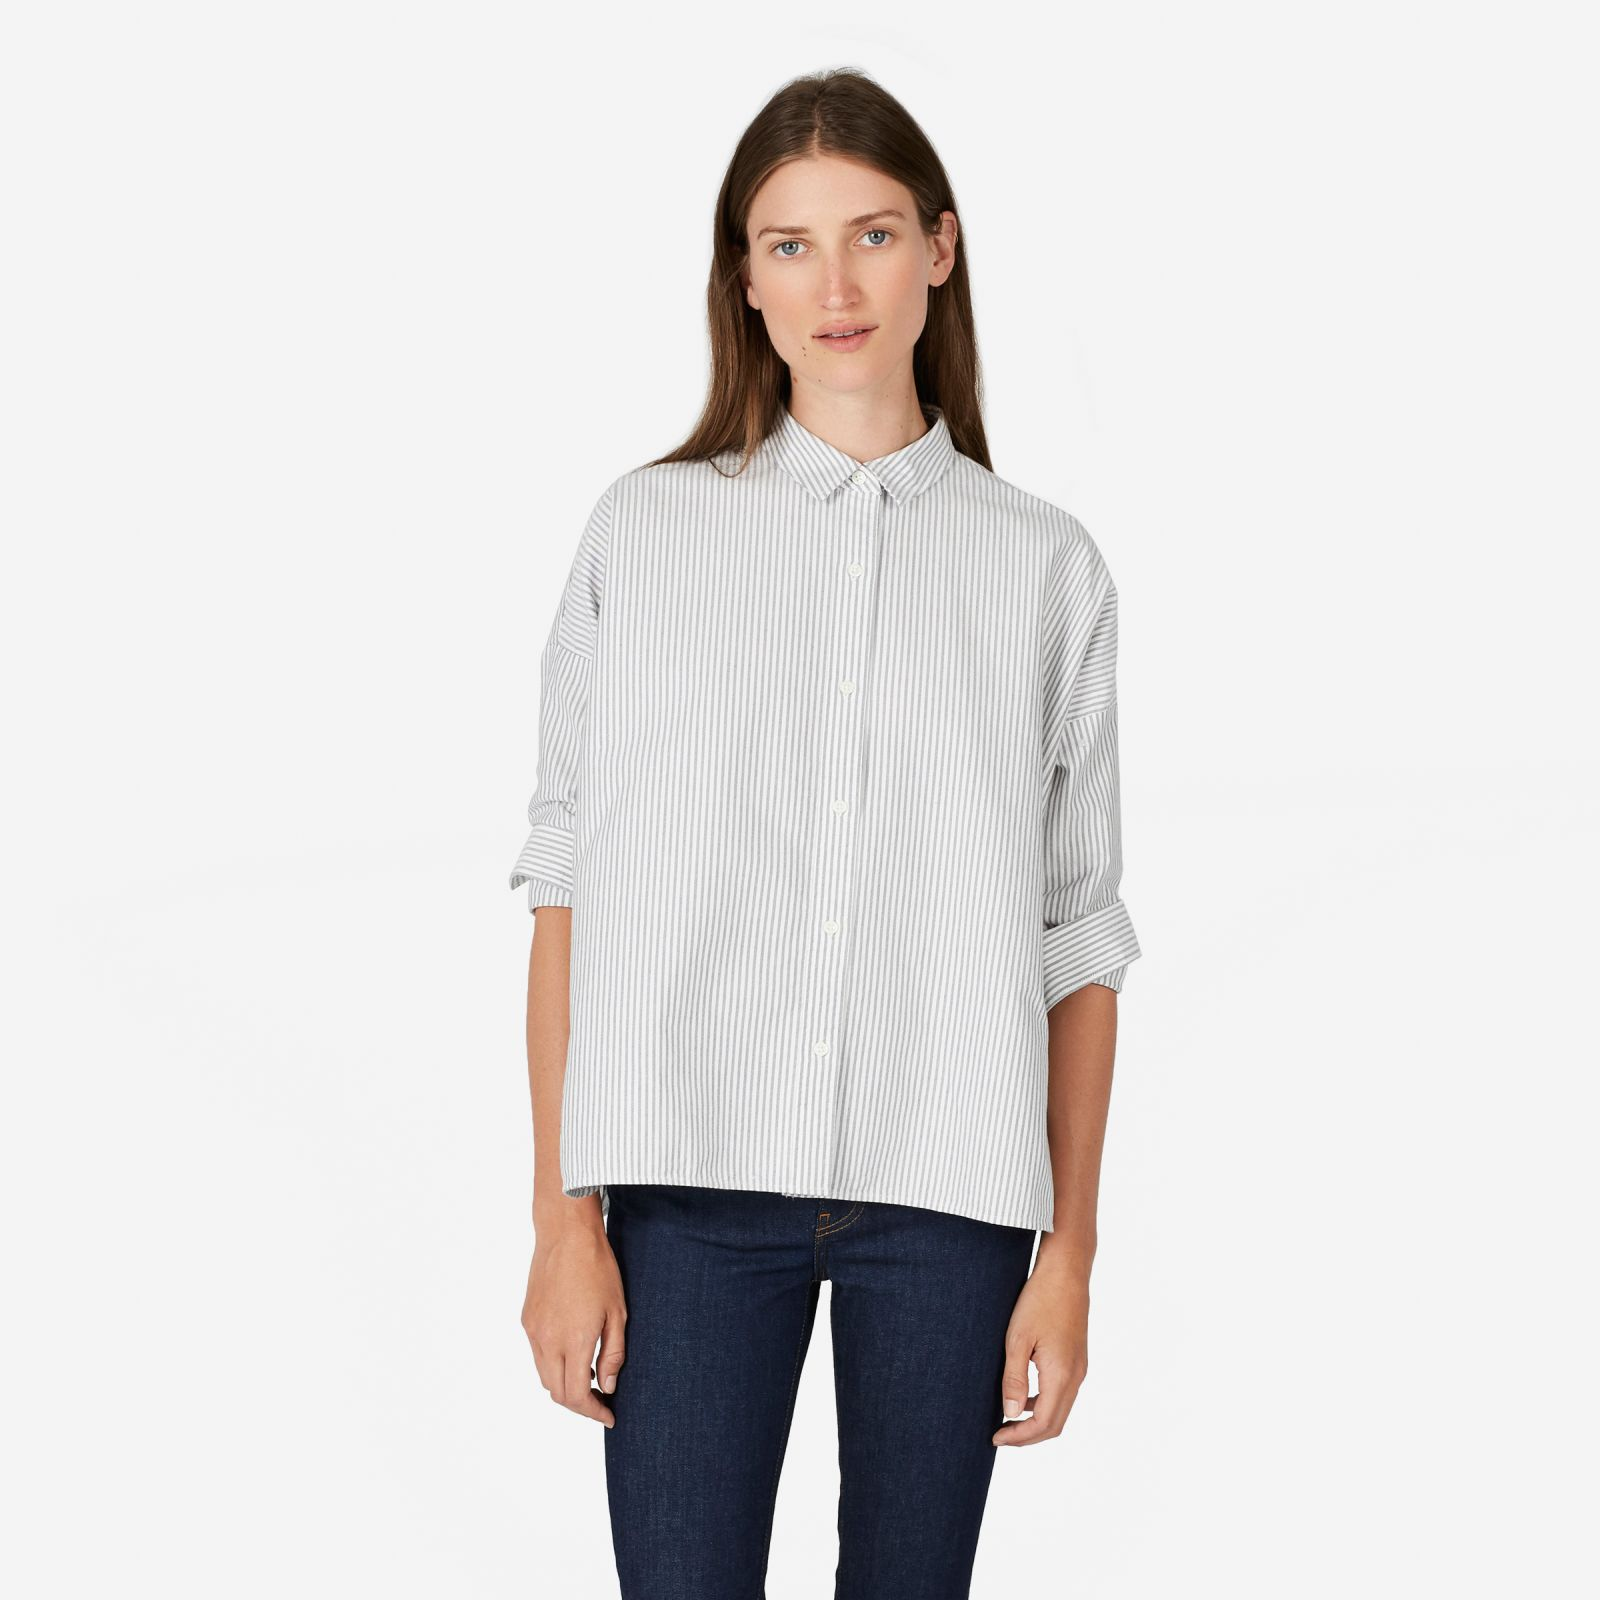 women's japanese oxford square shirt by everlane in white / black, size 12